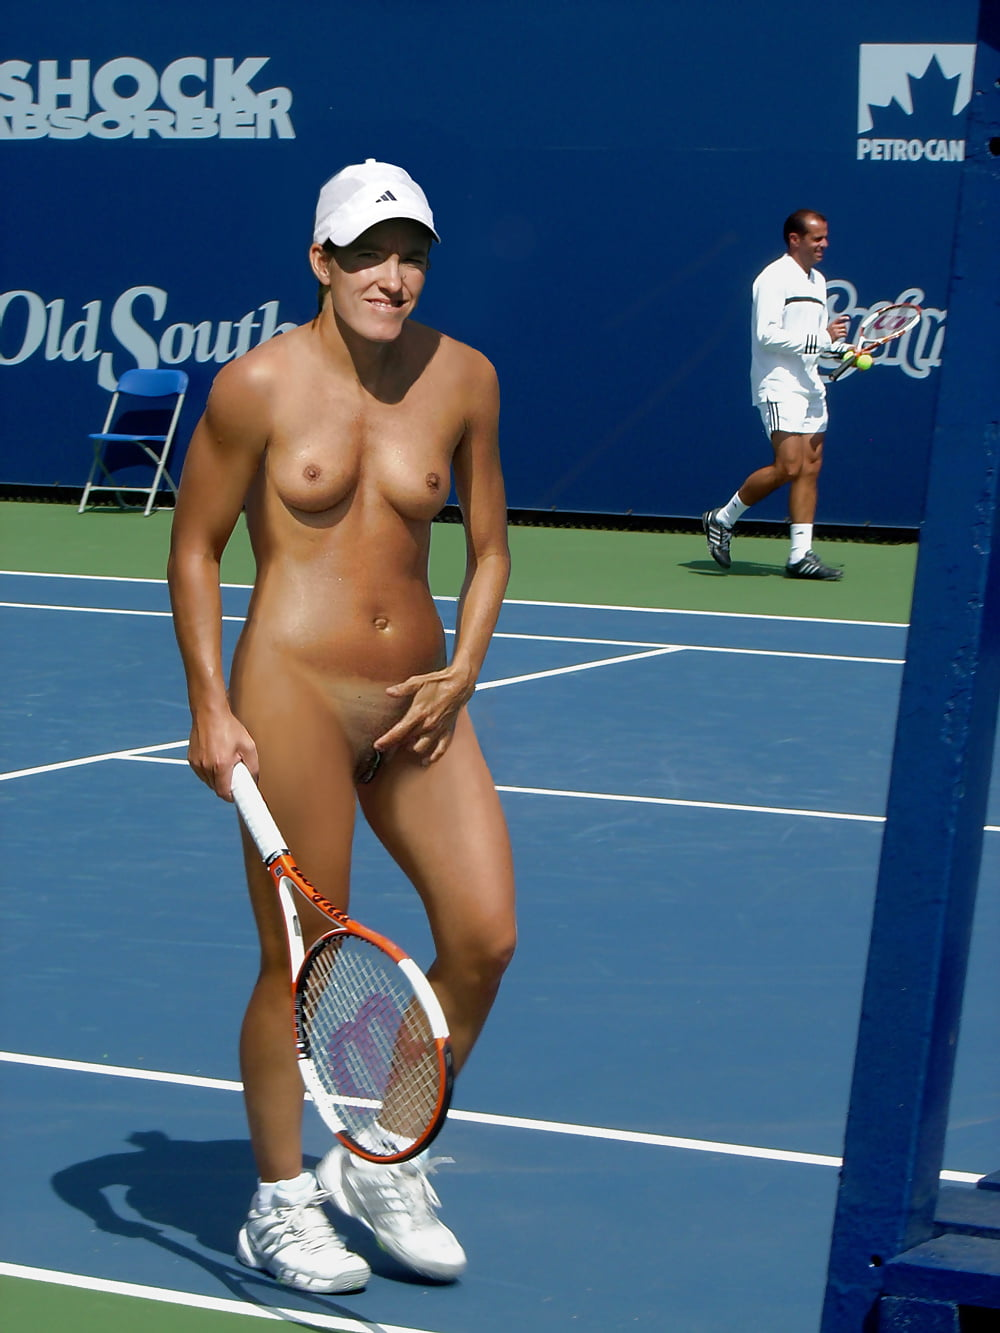 tennis-girls-nude-images